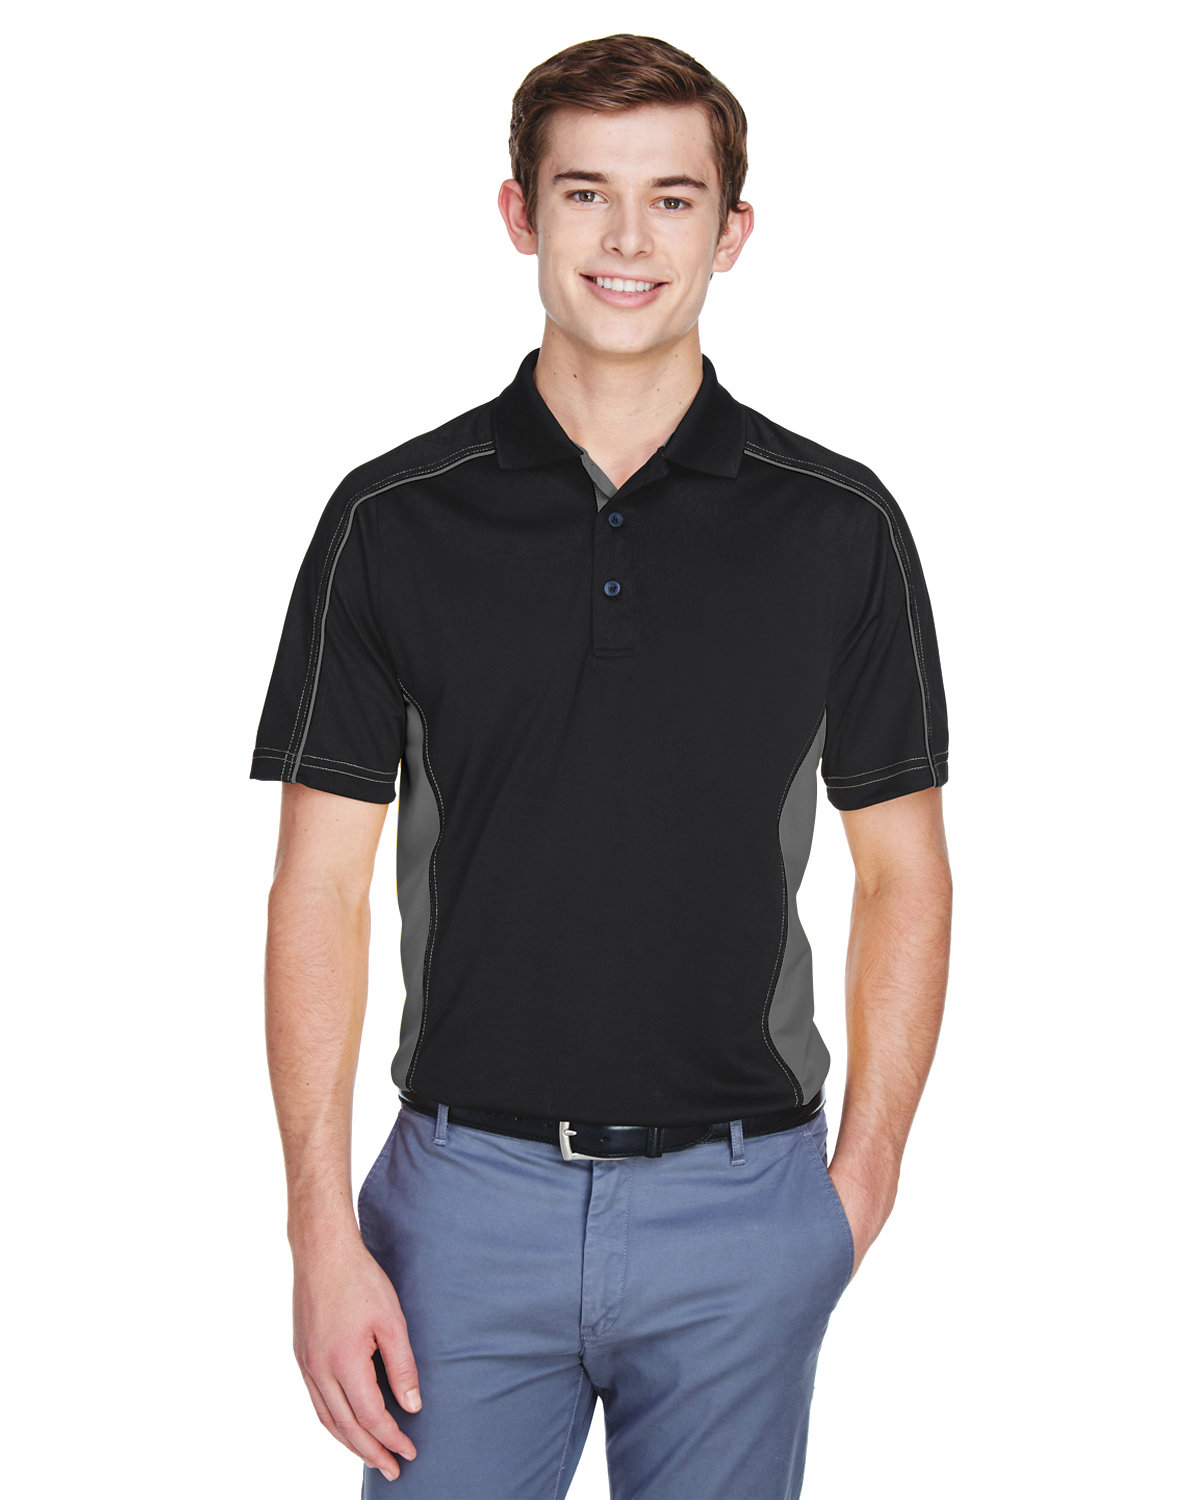 Extreme Men's Eperformance™ Fuse Snag Protection Plus Colorblock Polo BLACK/ CARBON